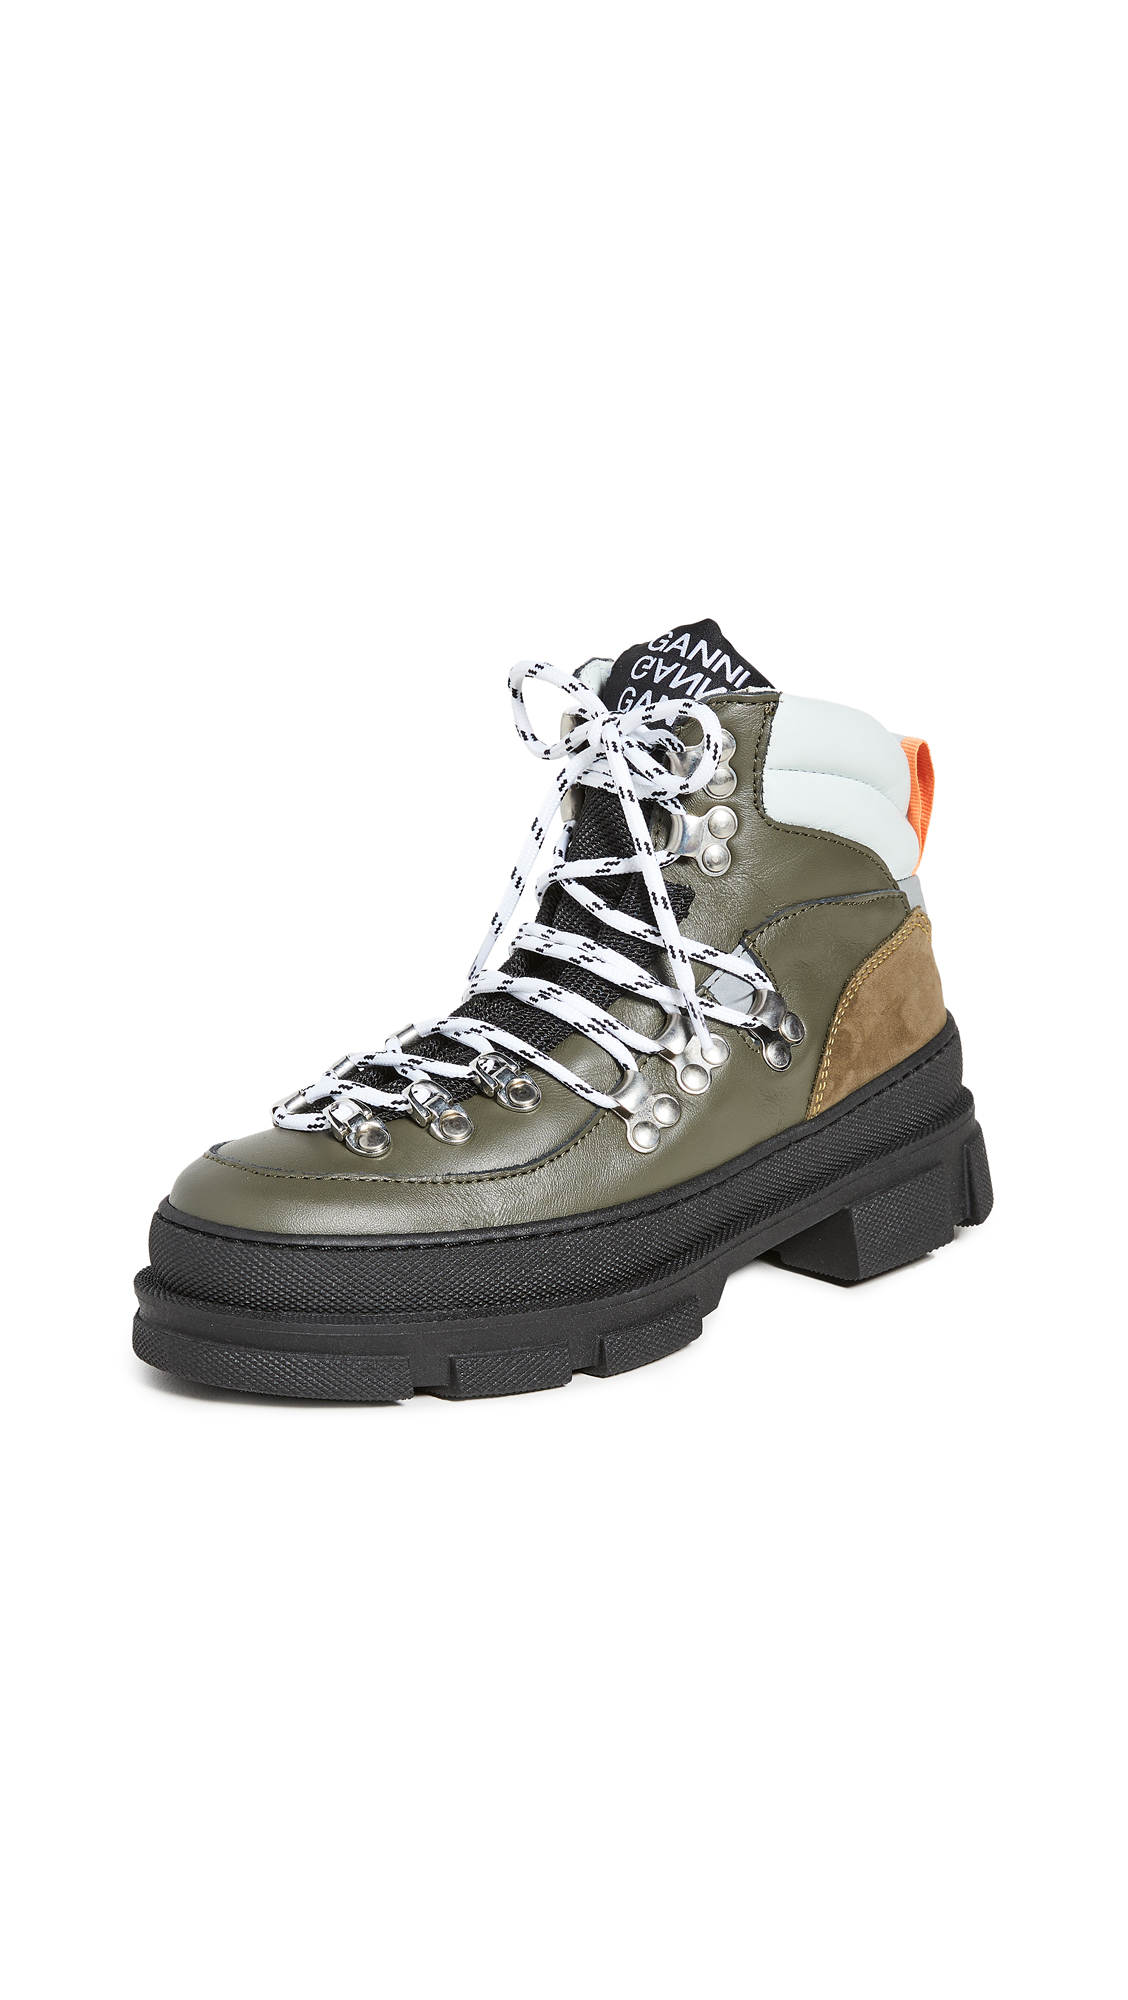 GANNI Sporty Hiking Boots - 40% Off Sale